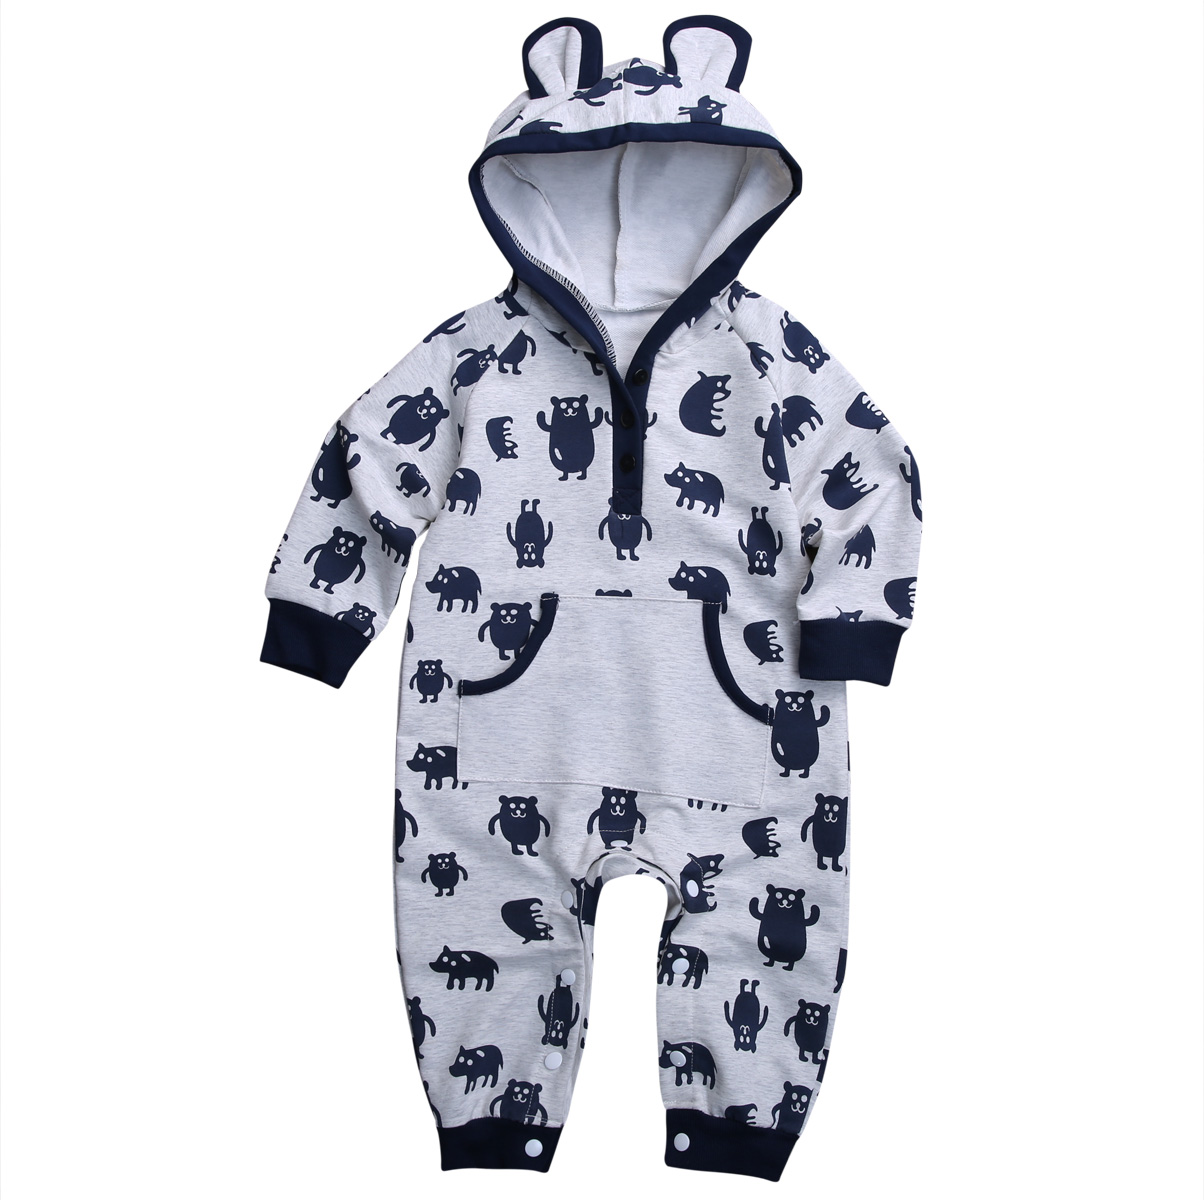 Newborn Infant Baby Boy Girl Kids Winter Clothes Cotton Warm Bear Long Romper Jumpsuit Outfit newborn infant warm baby boy girl clothes cotton long sleeve hooded romper jumpsuit one pieces outfit tracksuit 0 24m